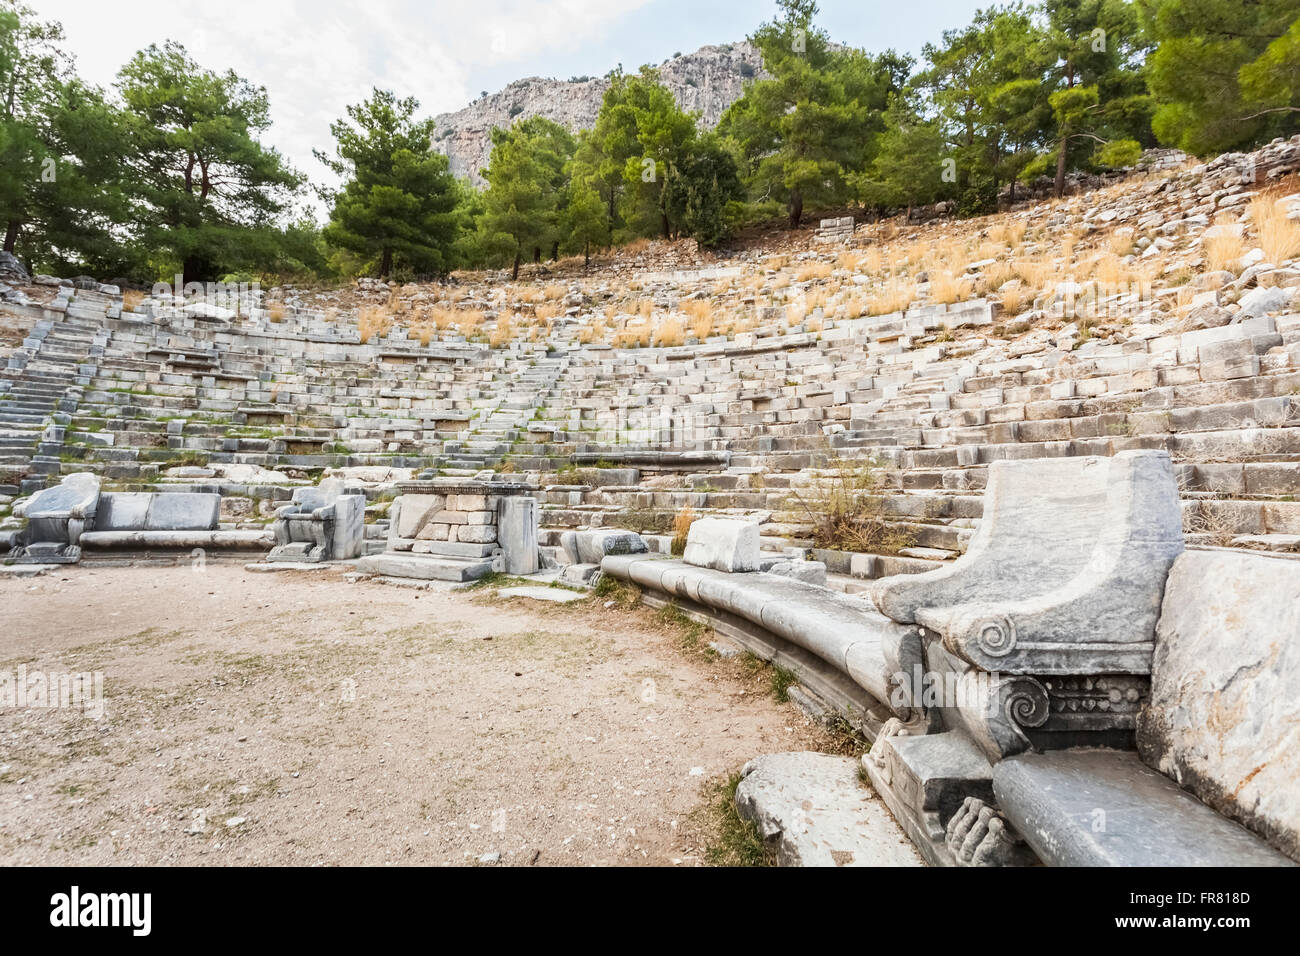 Ruins of an amphitheatre; Priene, Turkey Stock Photo